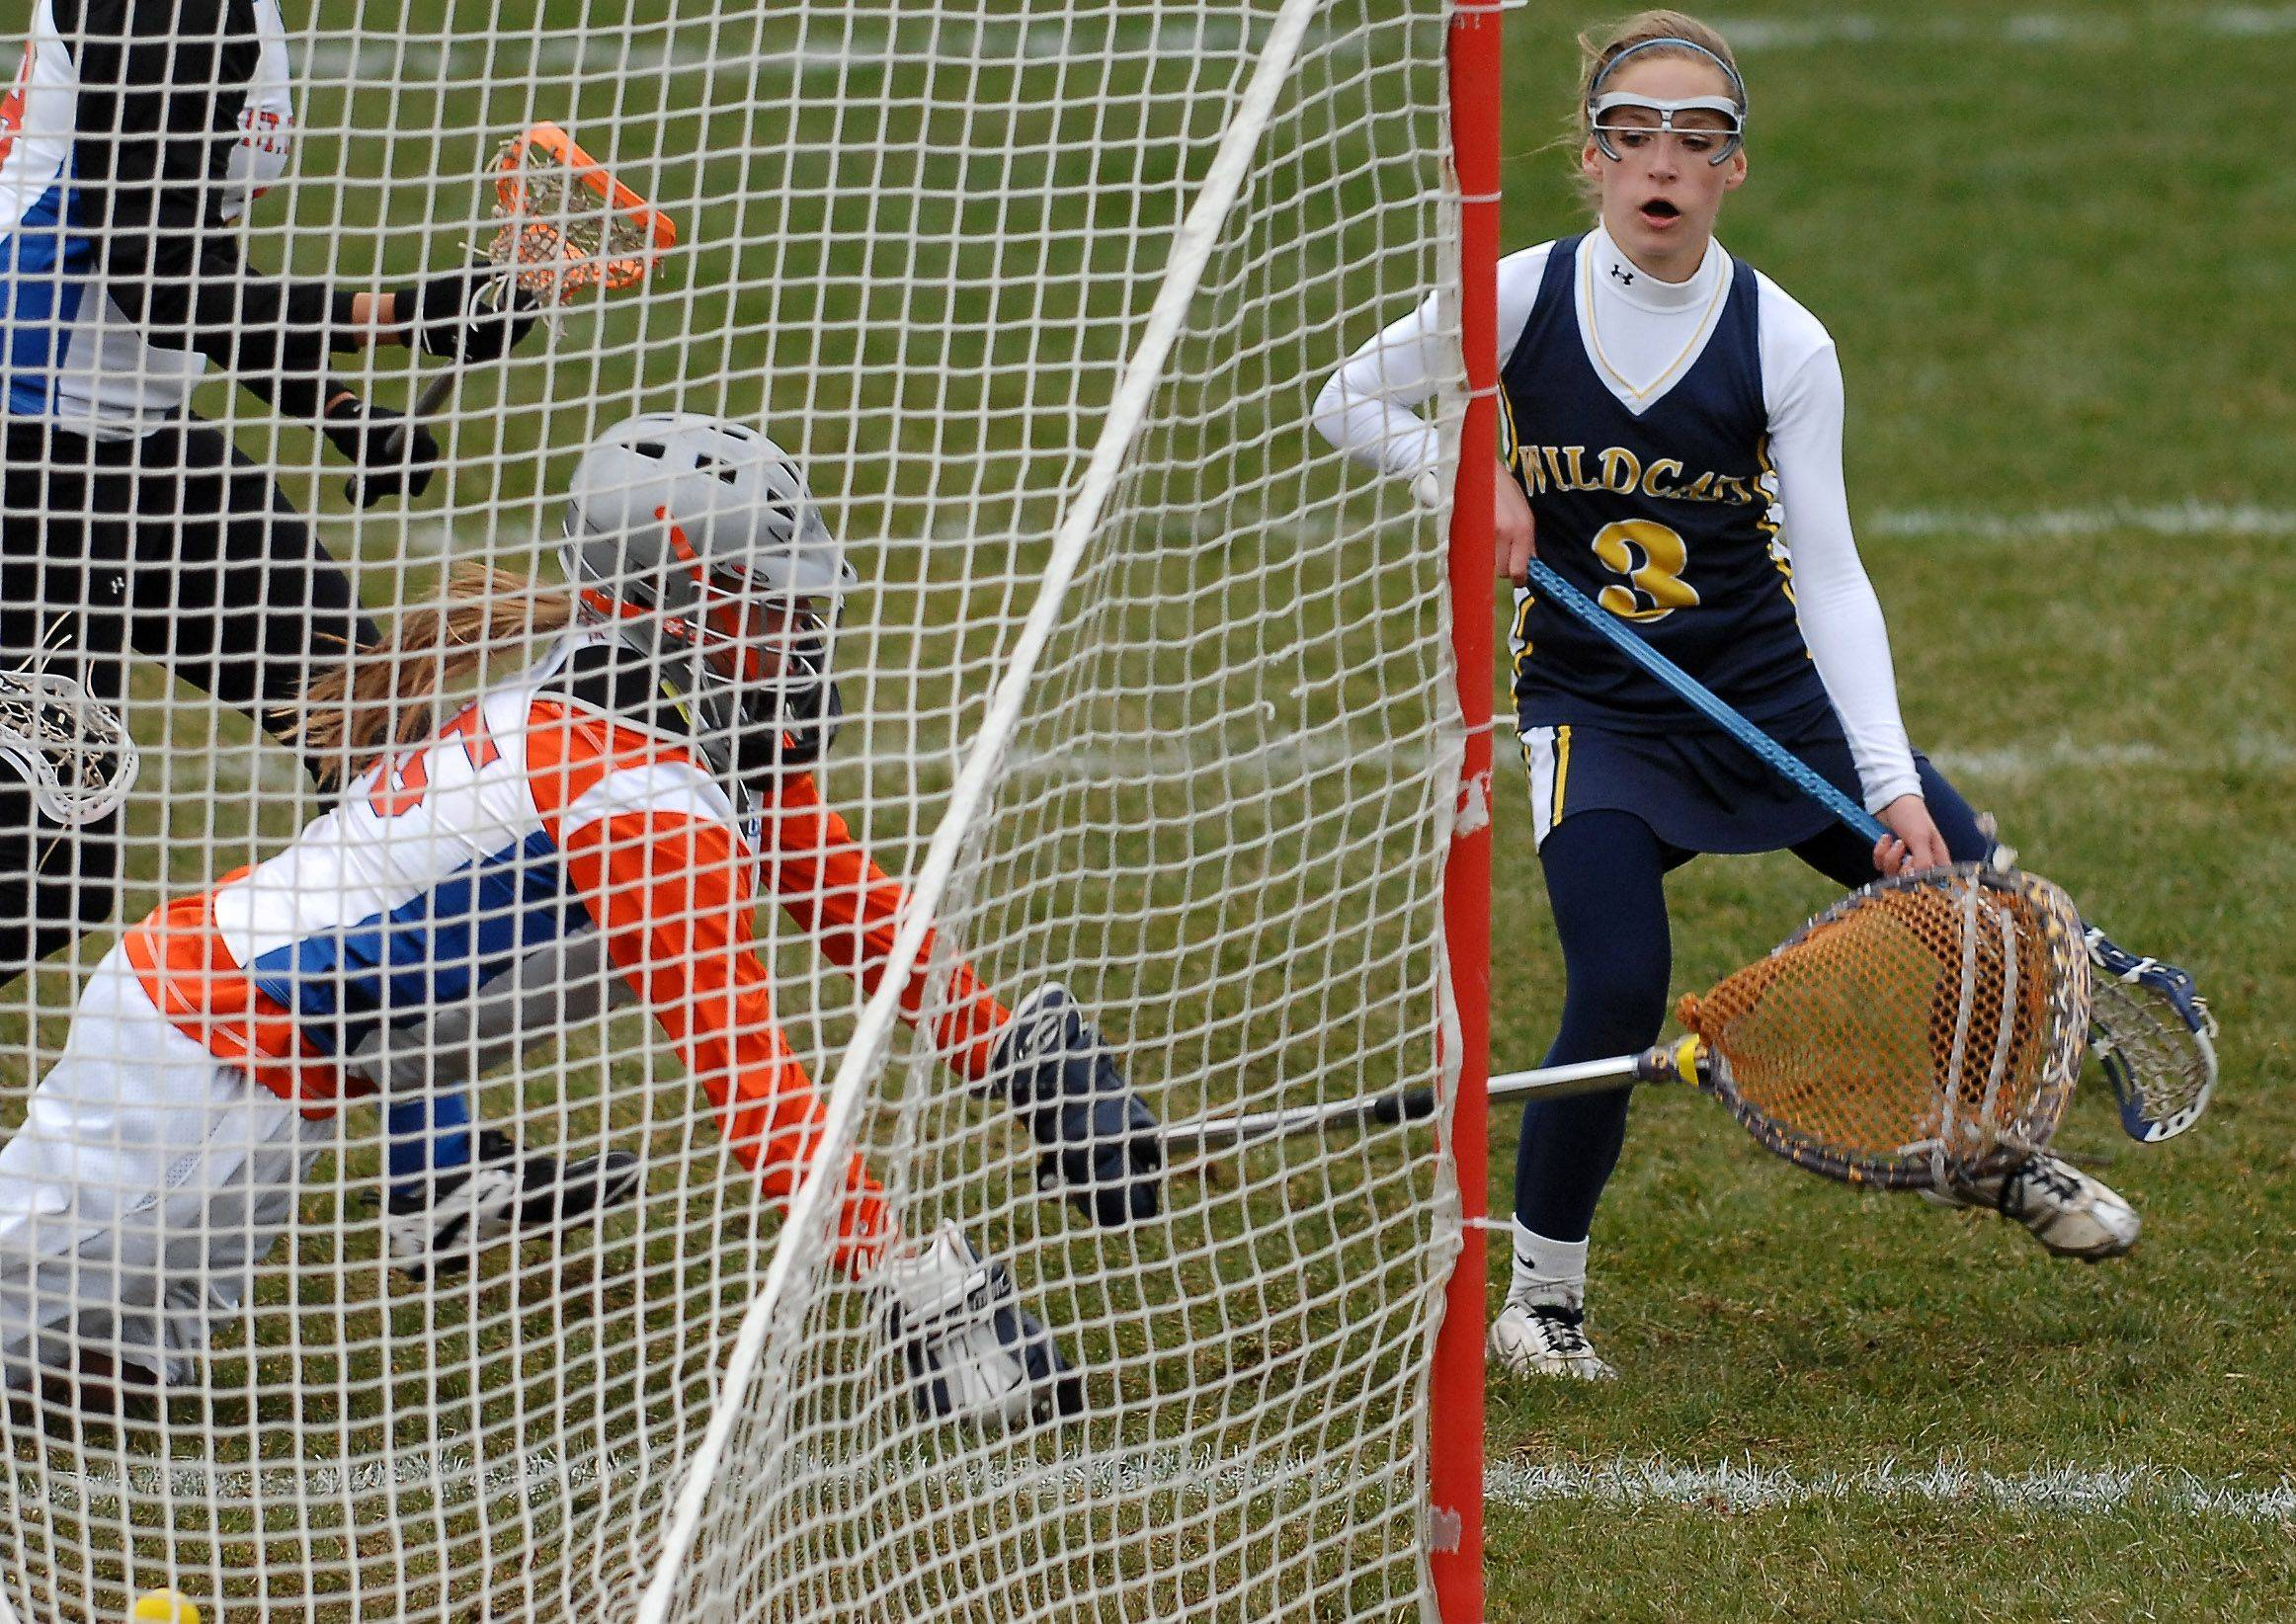 Neuqua Valley's Kelly Leibovitz shoots past St. Charles Co-op goalkeeper Margaret Zimmer during girls lacrosse action in St. Charles Thursday, April 21, 2011.